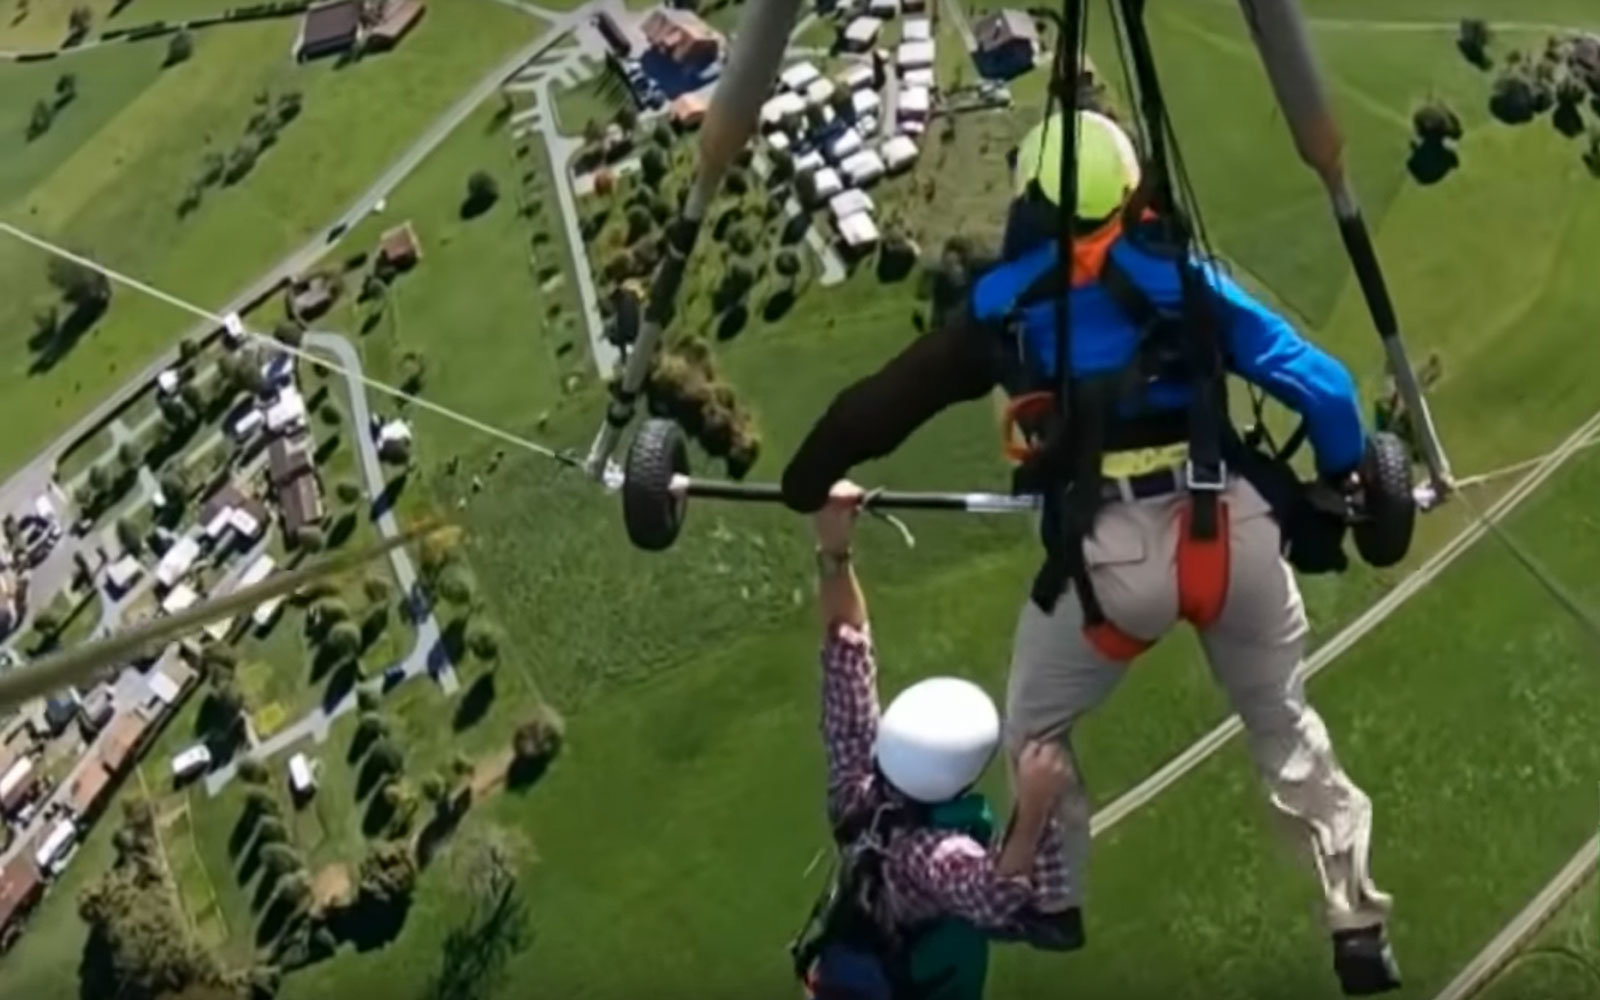 Watch This Hang Glider Hang On For Dear Life After